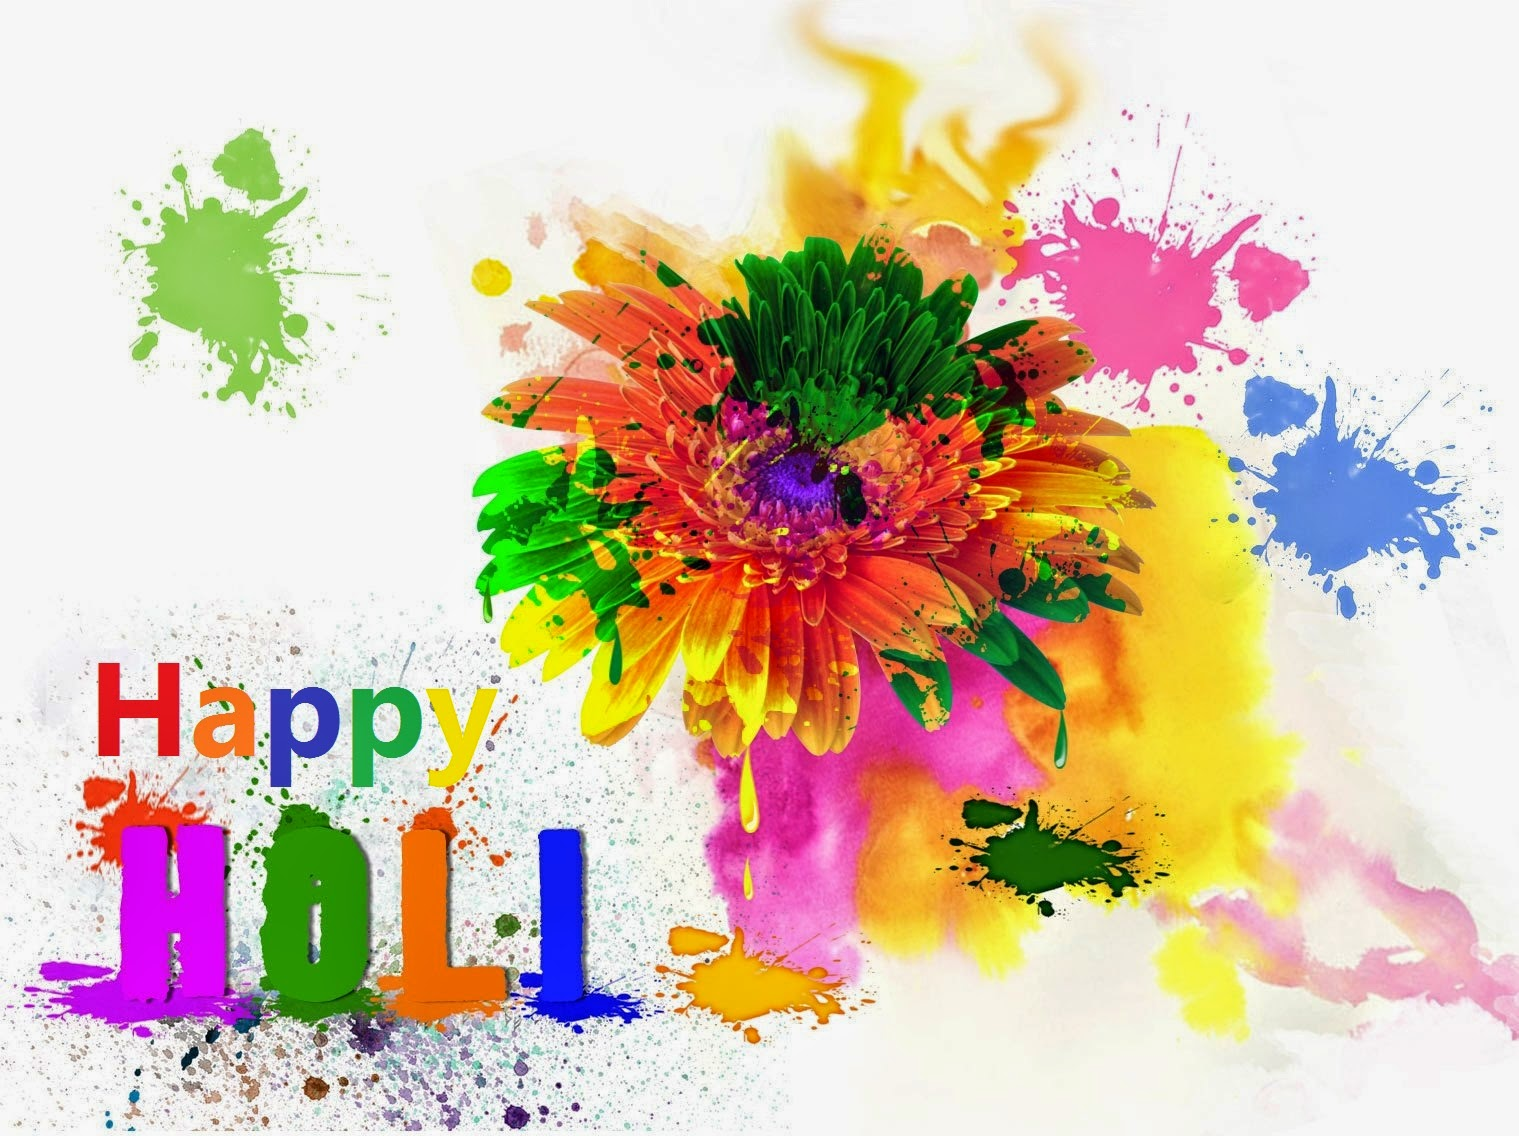 essay writing letter writing all types of sms holi sms 2015 happy holi 2015 sms messages latest collection happy holi 2015 wishes